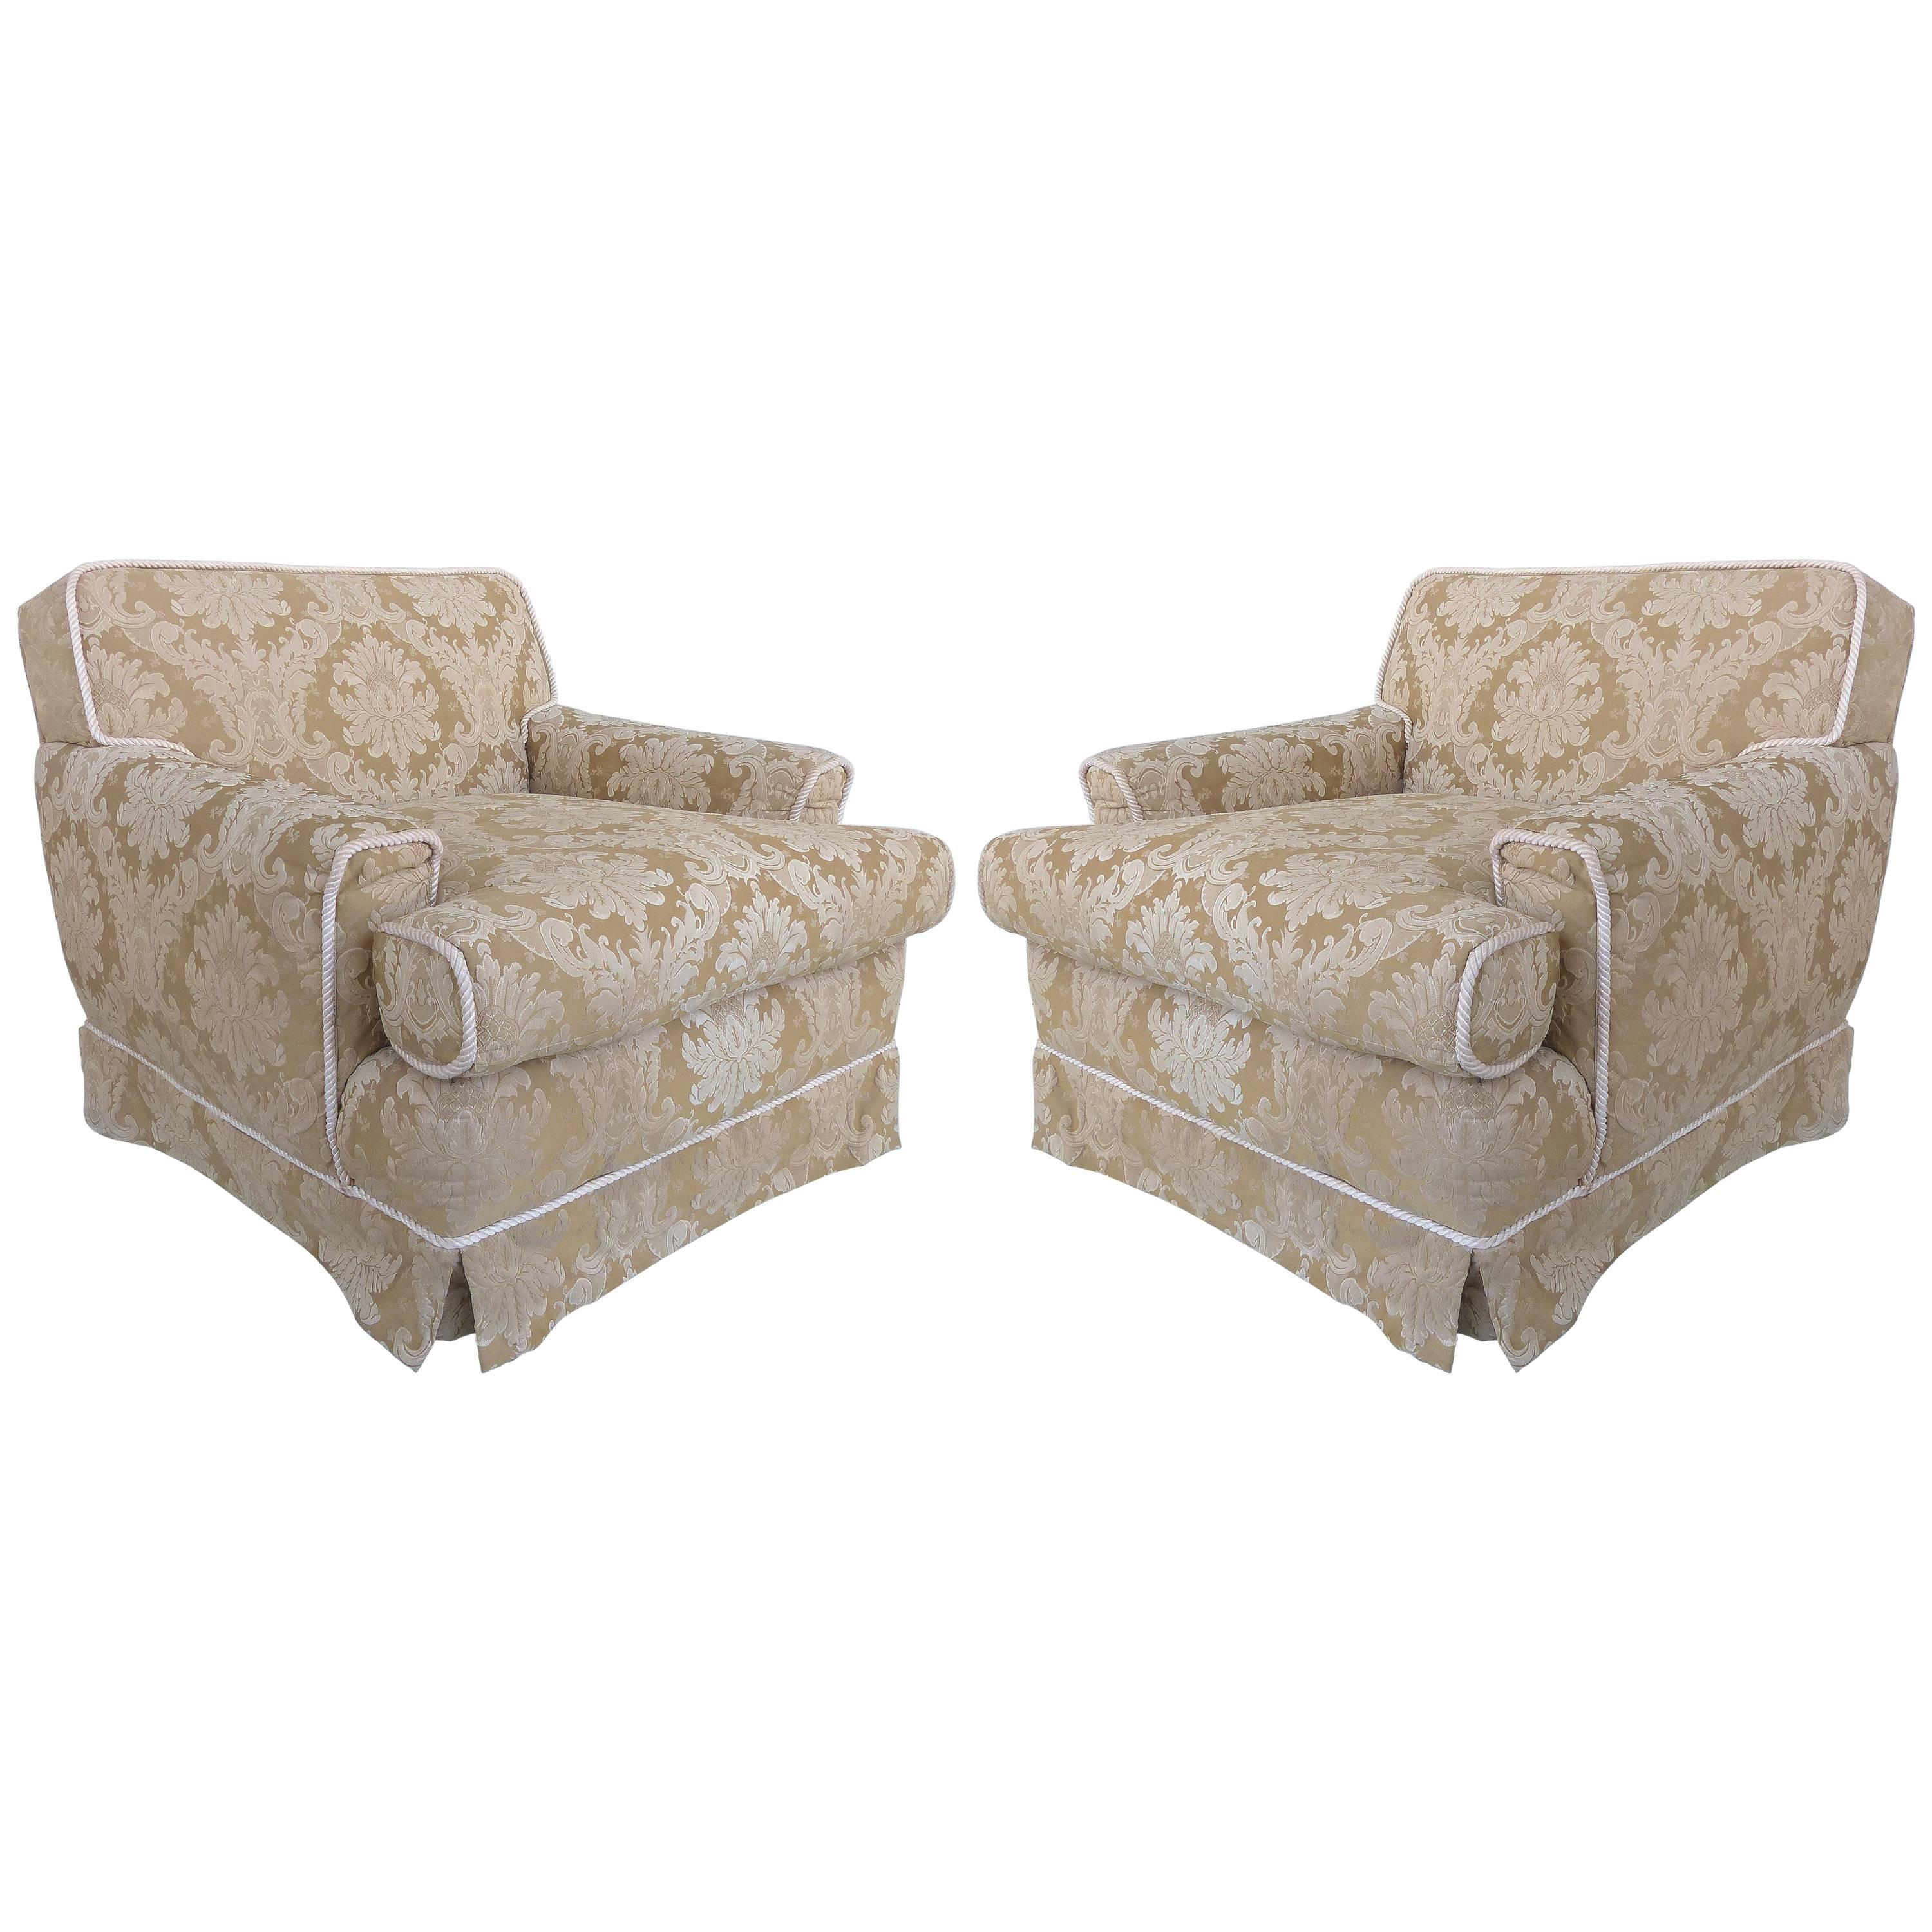 Damask Club Chairs With Down Filled Cushions, Skirted Bottom And Rope Trim  For Sale